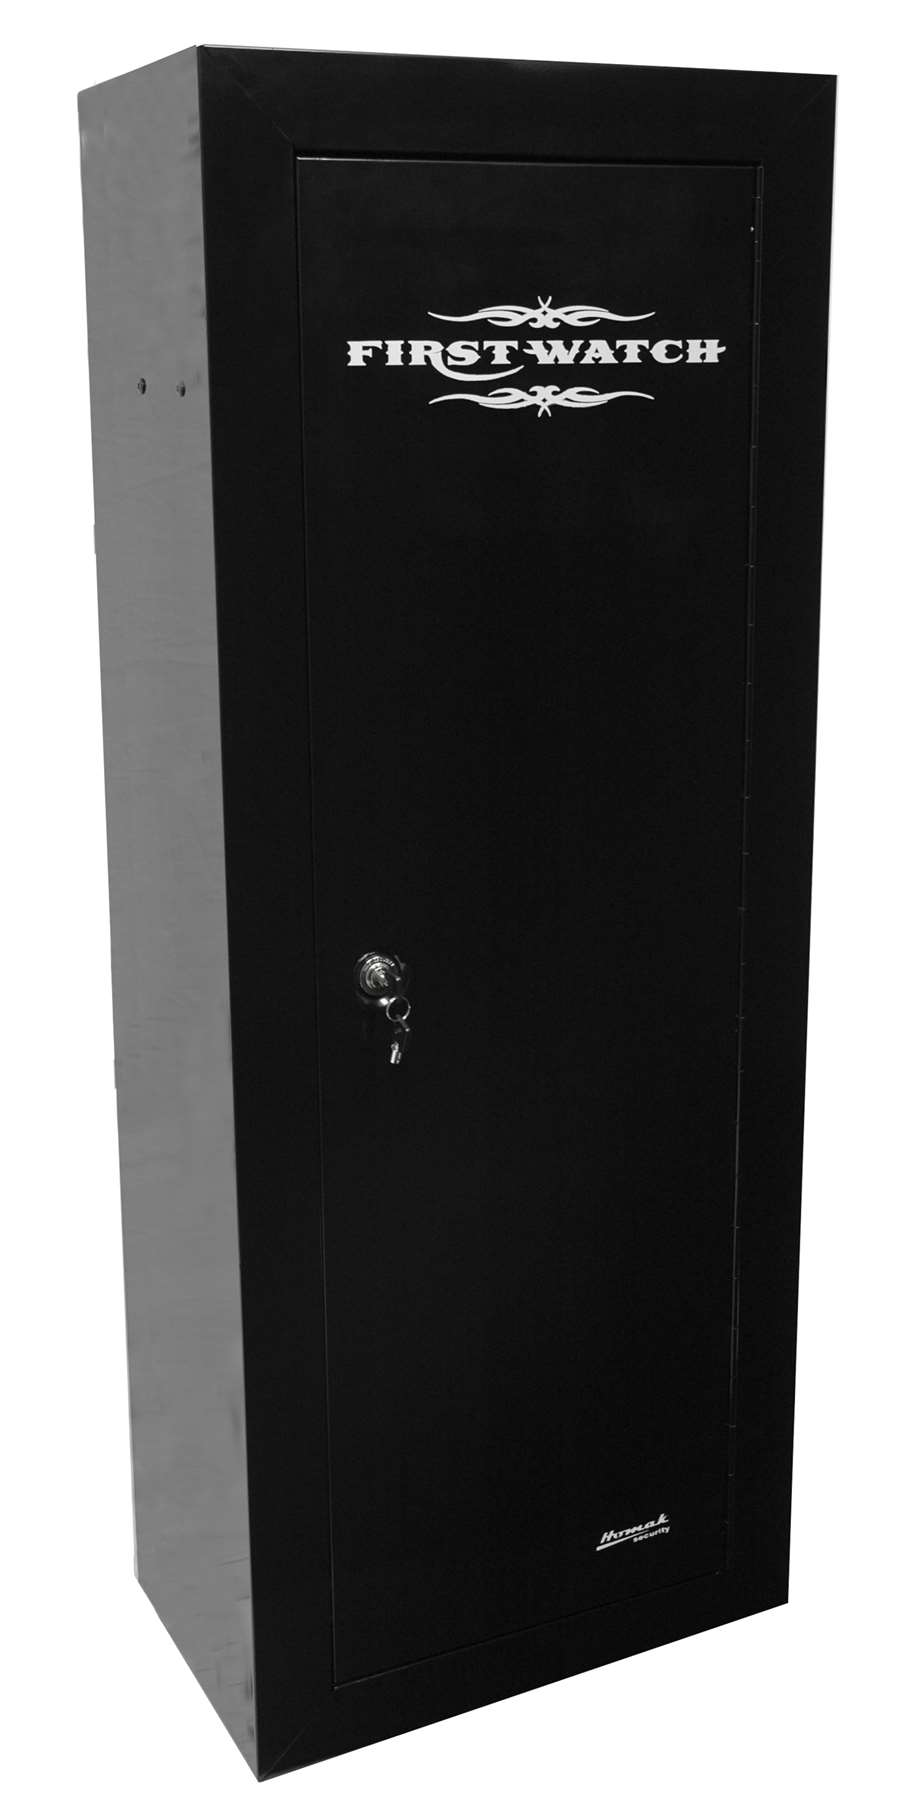 Black Gun Safe In Living Room Decor: Homak 14-Gun First Watch Steel Security Cabinet, Black Gun